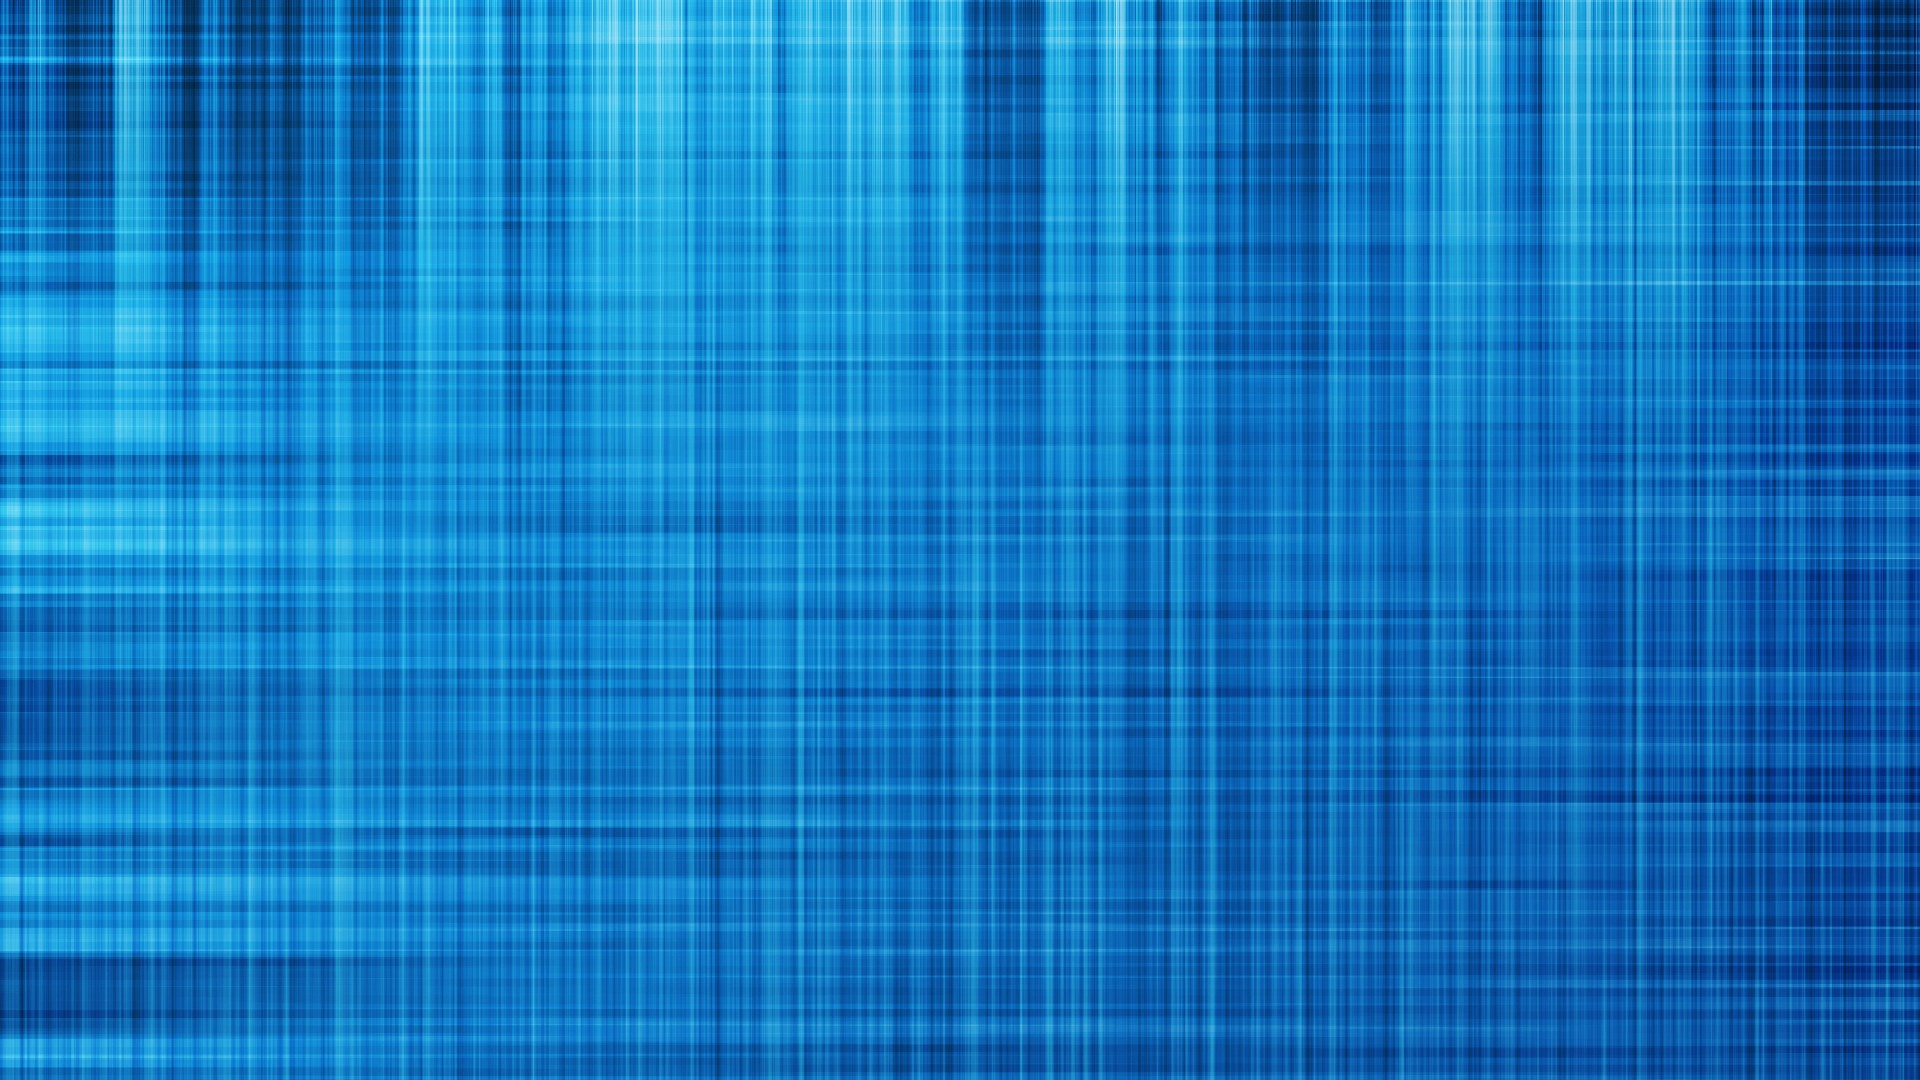 New 3d Wallpapers Free Download For Mobile Blue Textured Wallpapers Hd Pixelstalk Net